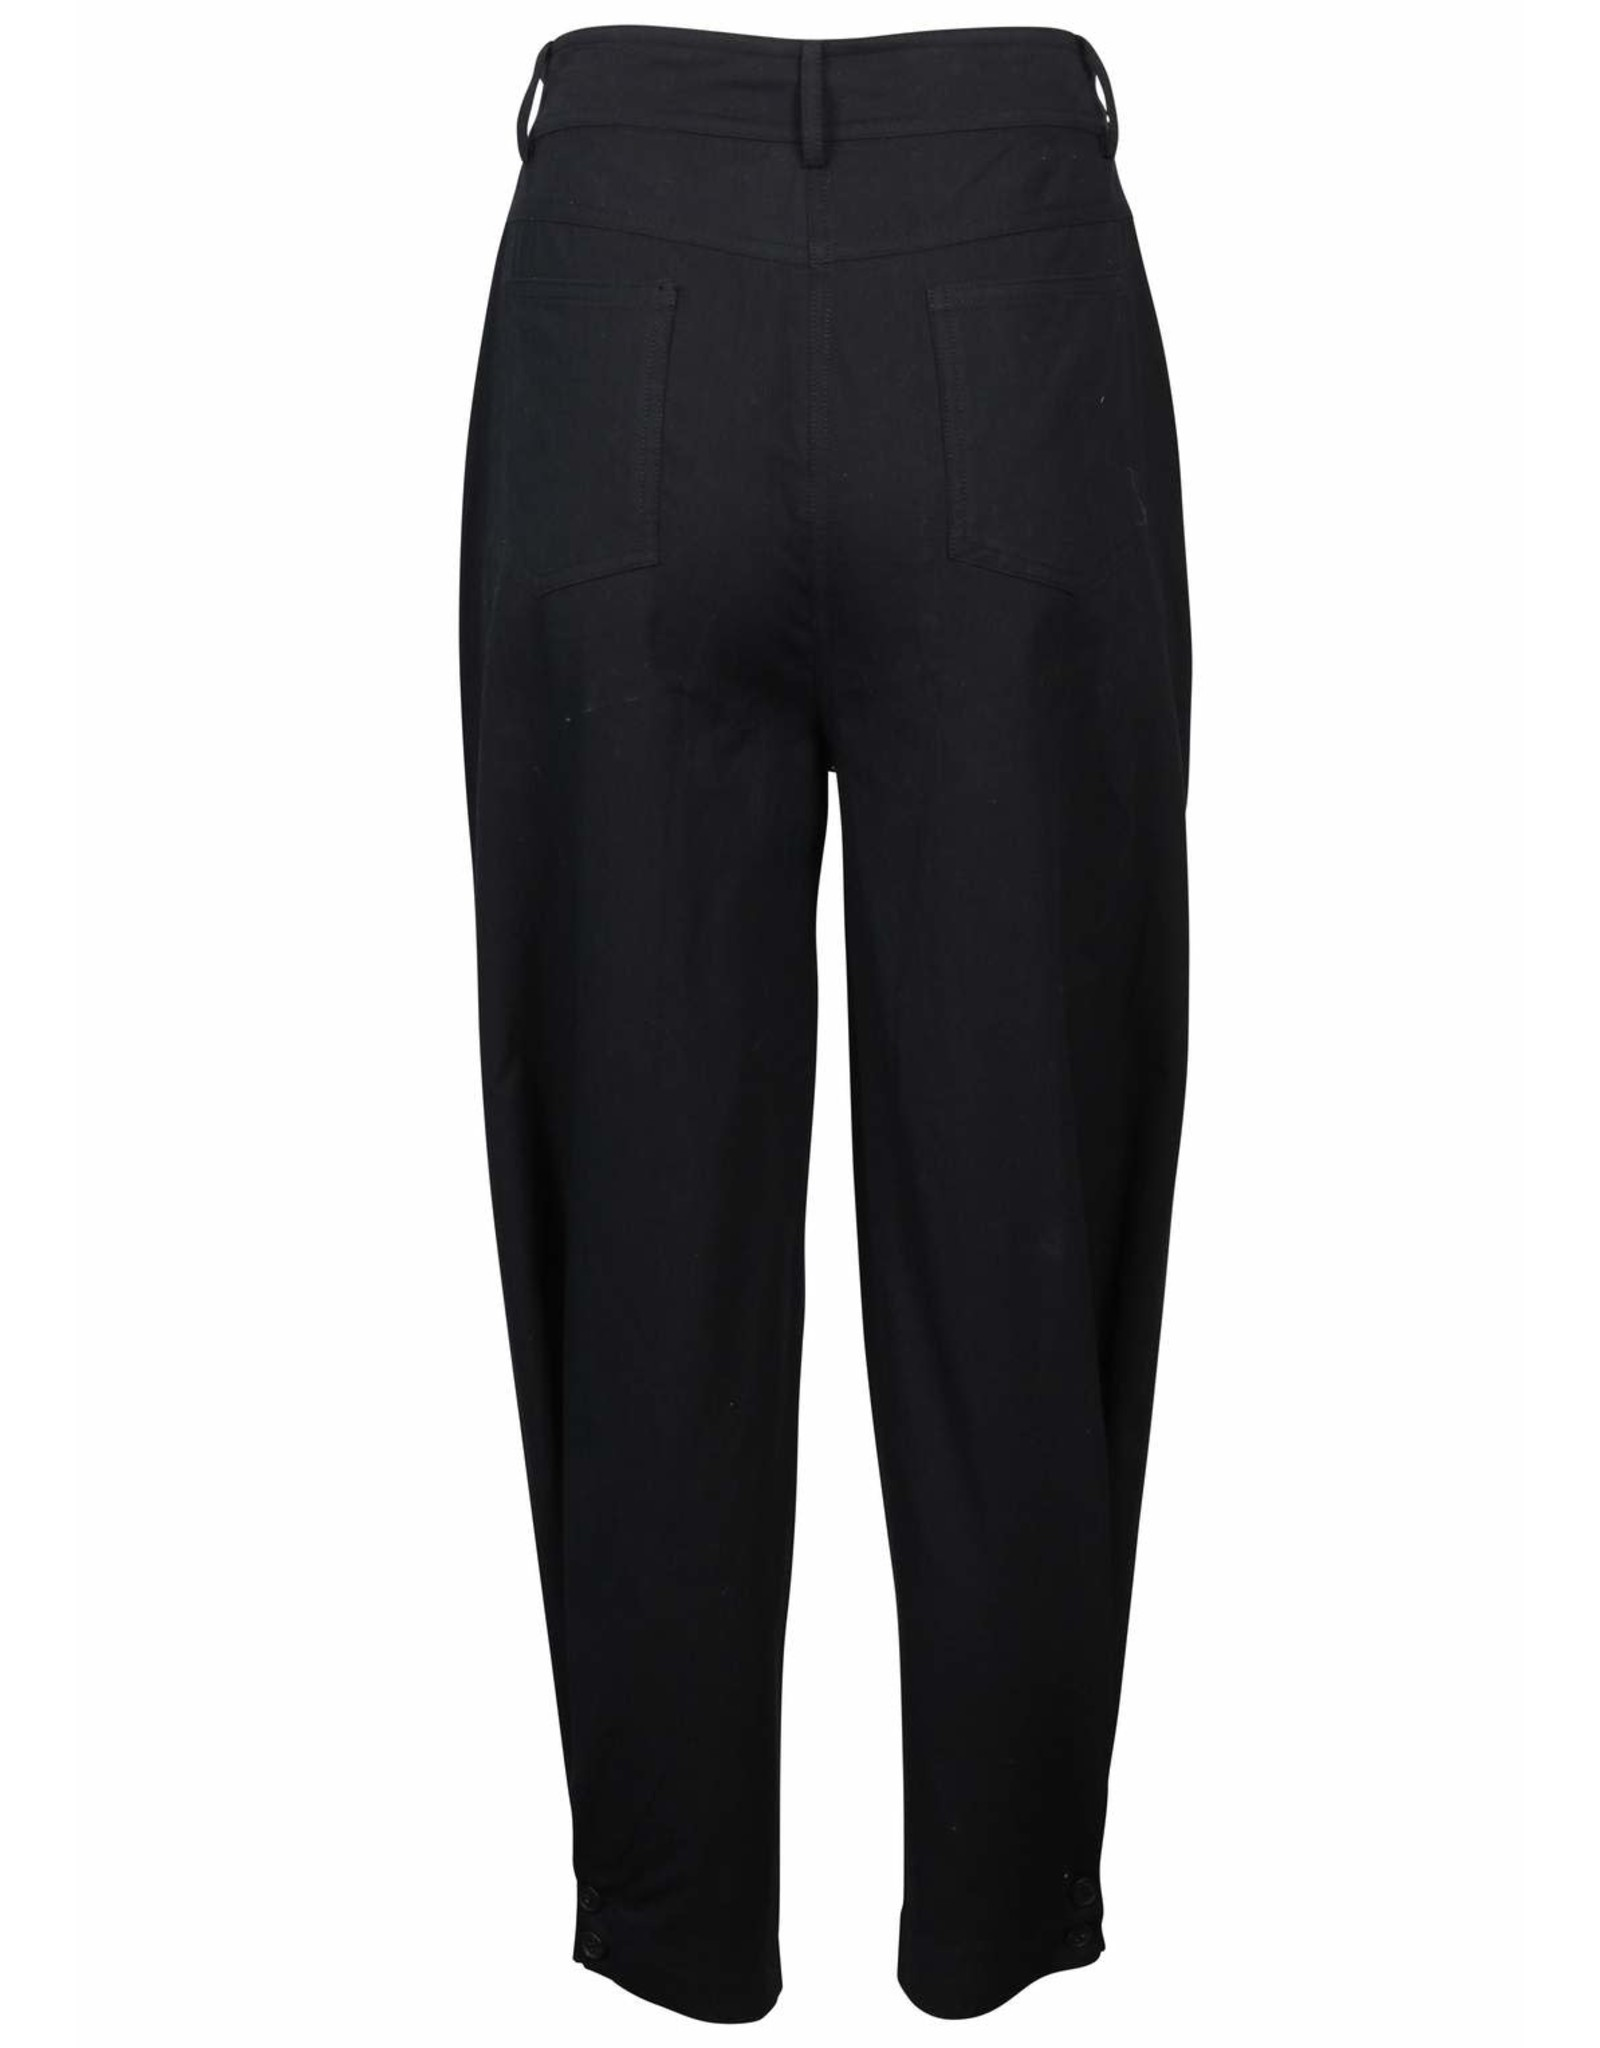 MINKPINK Stay Together Pant